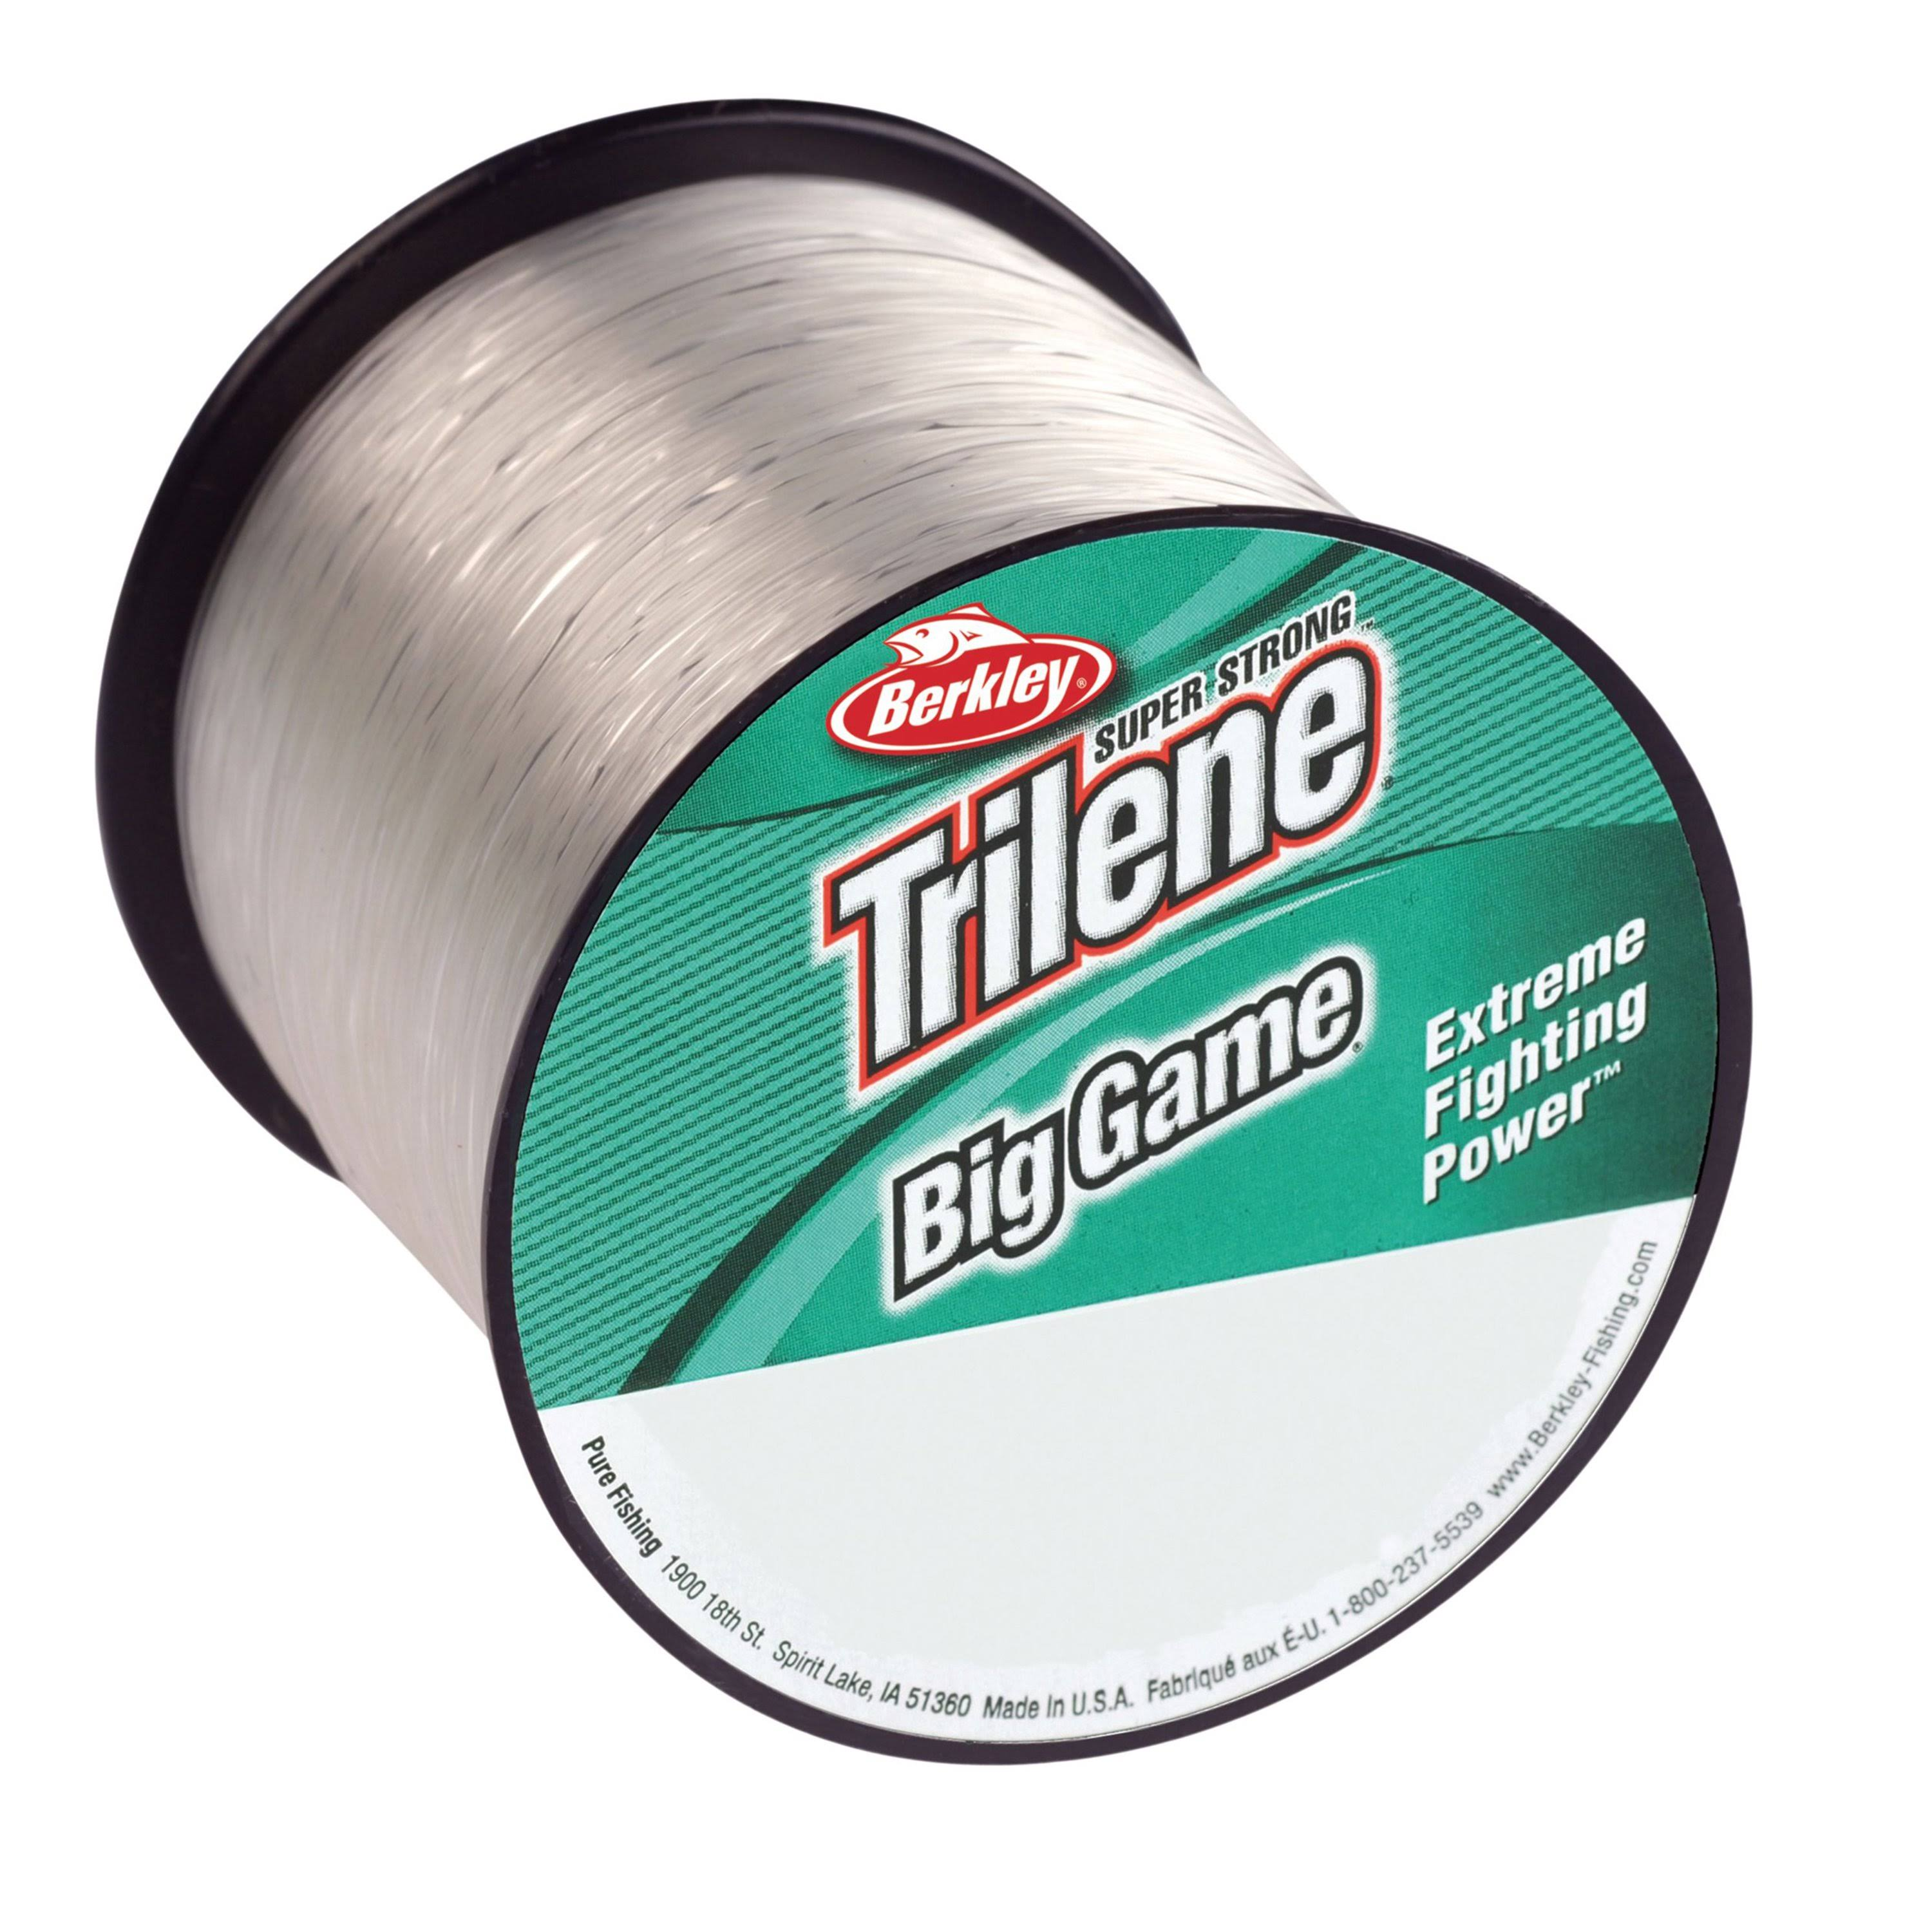 Berkley Trilene Big Game Monofilament Custom Spool - Clear, 1175yds, Test 12lbs